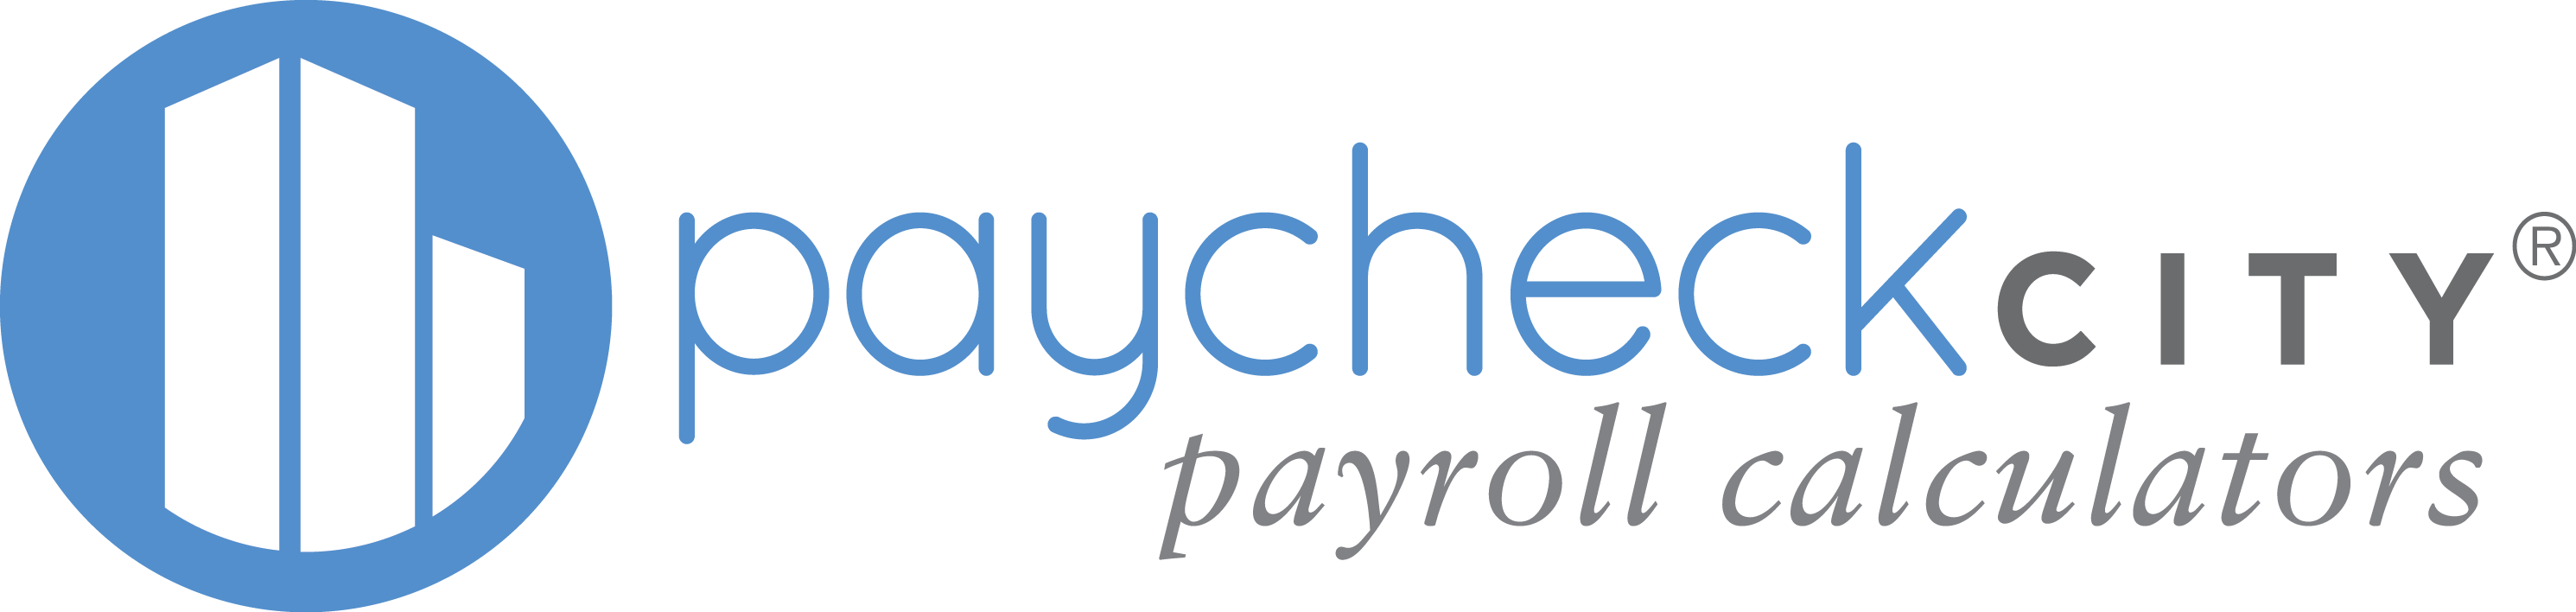 paycheckcity announces online payroll calculators ready to compute 2015 paychecks